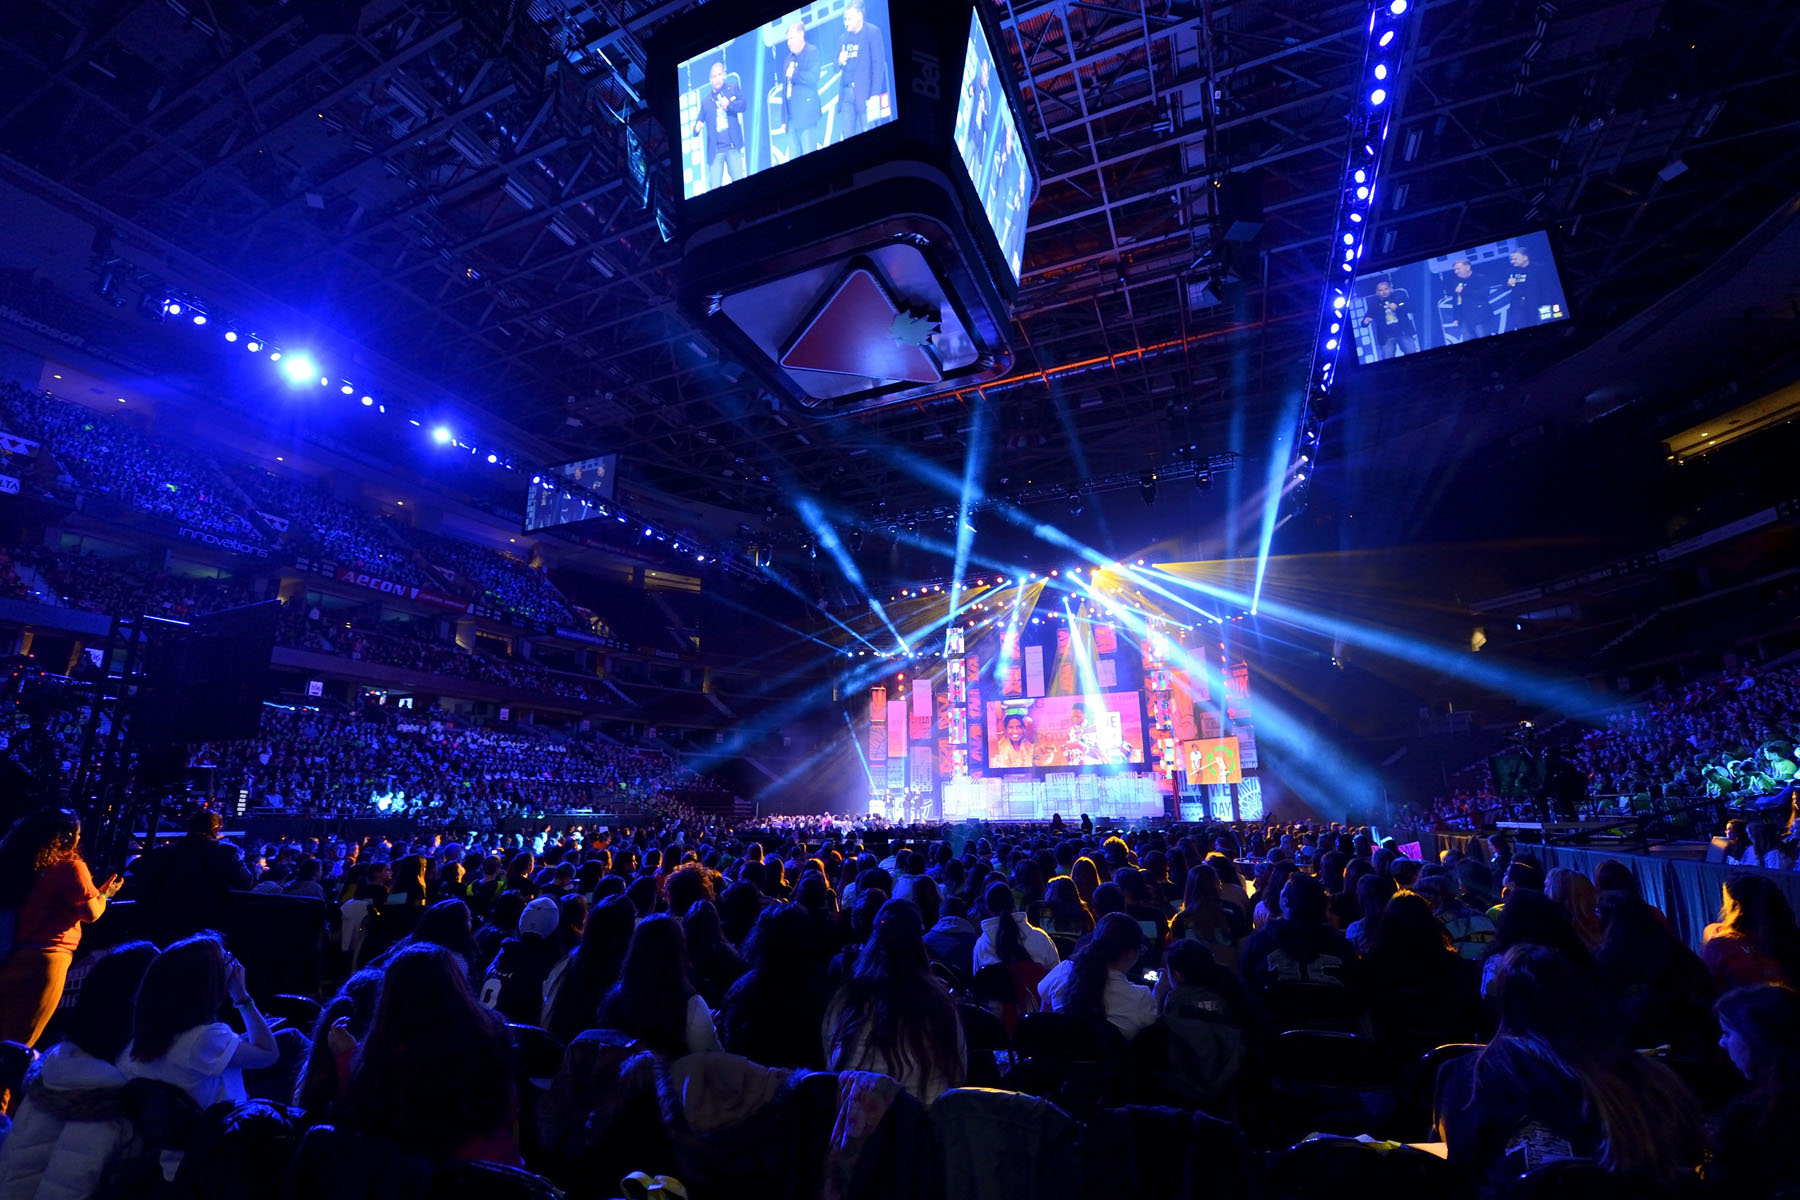 We Day is a movement of young people leading local and global change. This year alone, over 200 000 young people will come together in 14 cities across North America and the U.K. to take part in this unprecedented educational initiative.